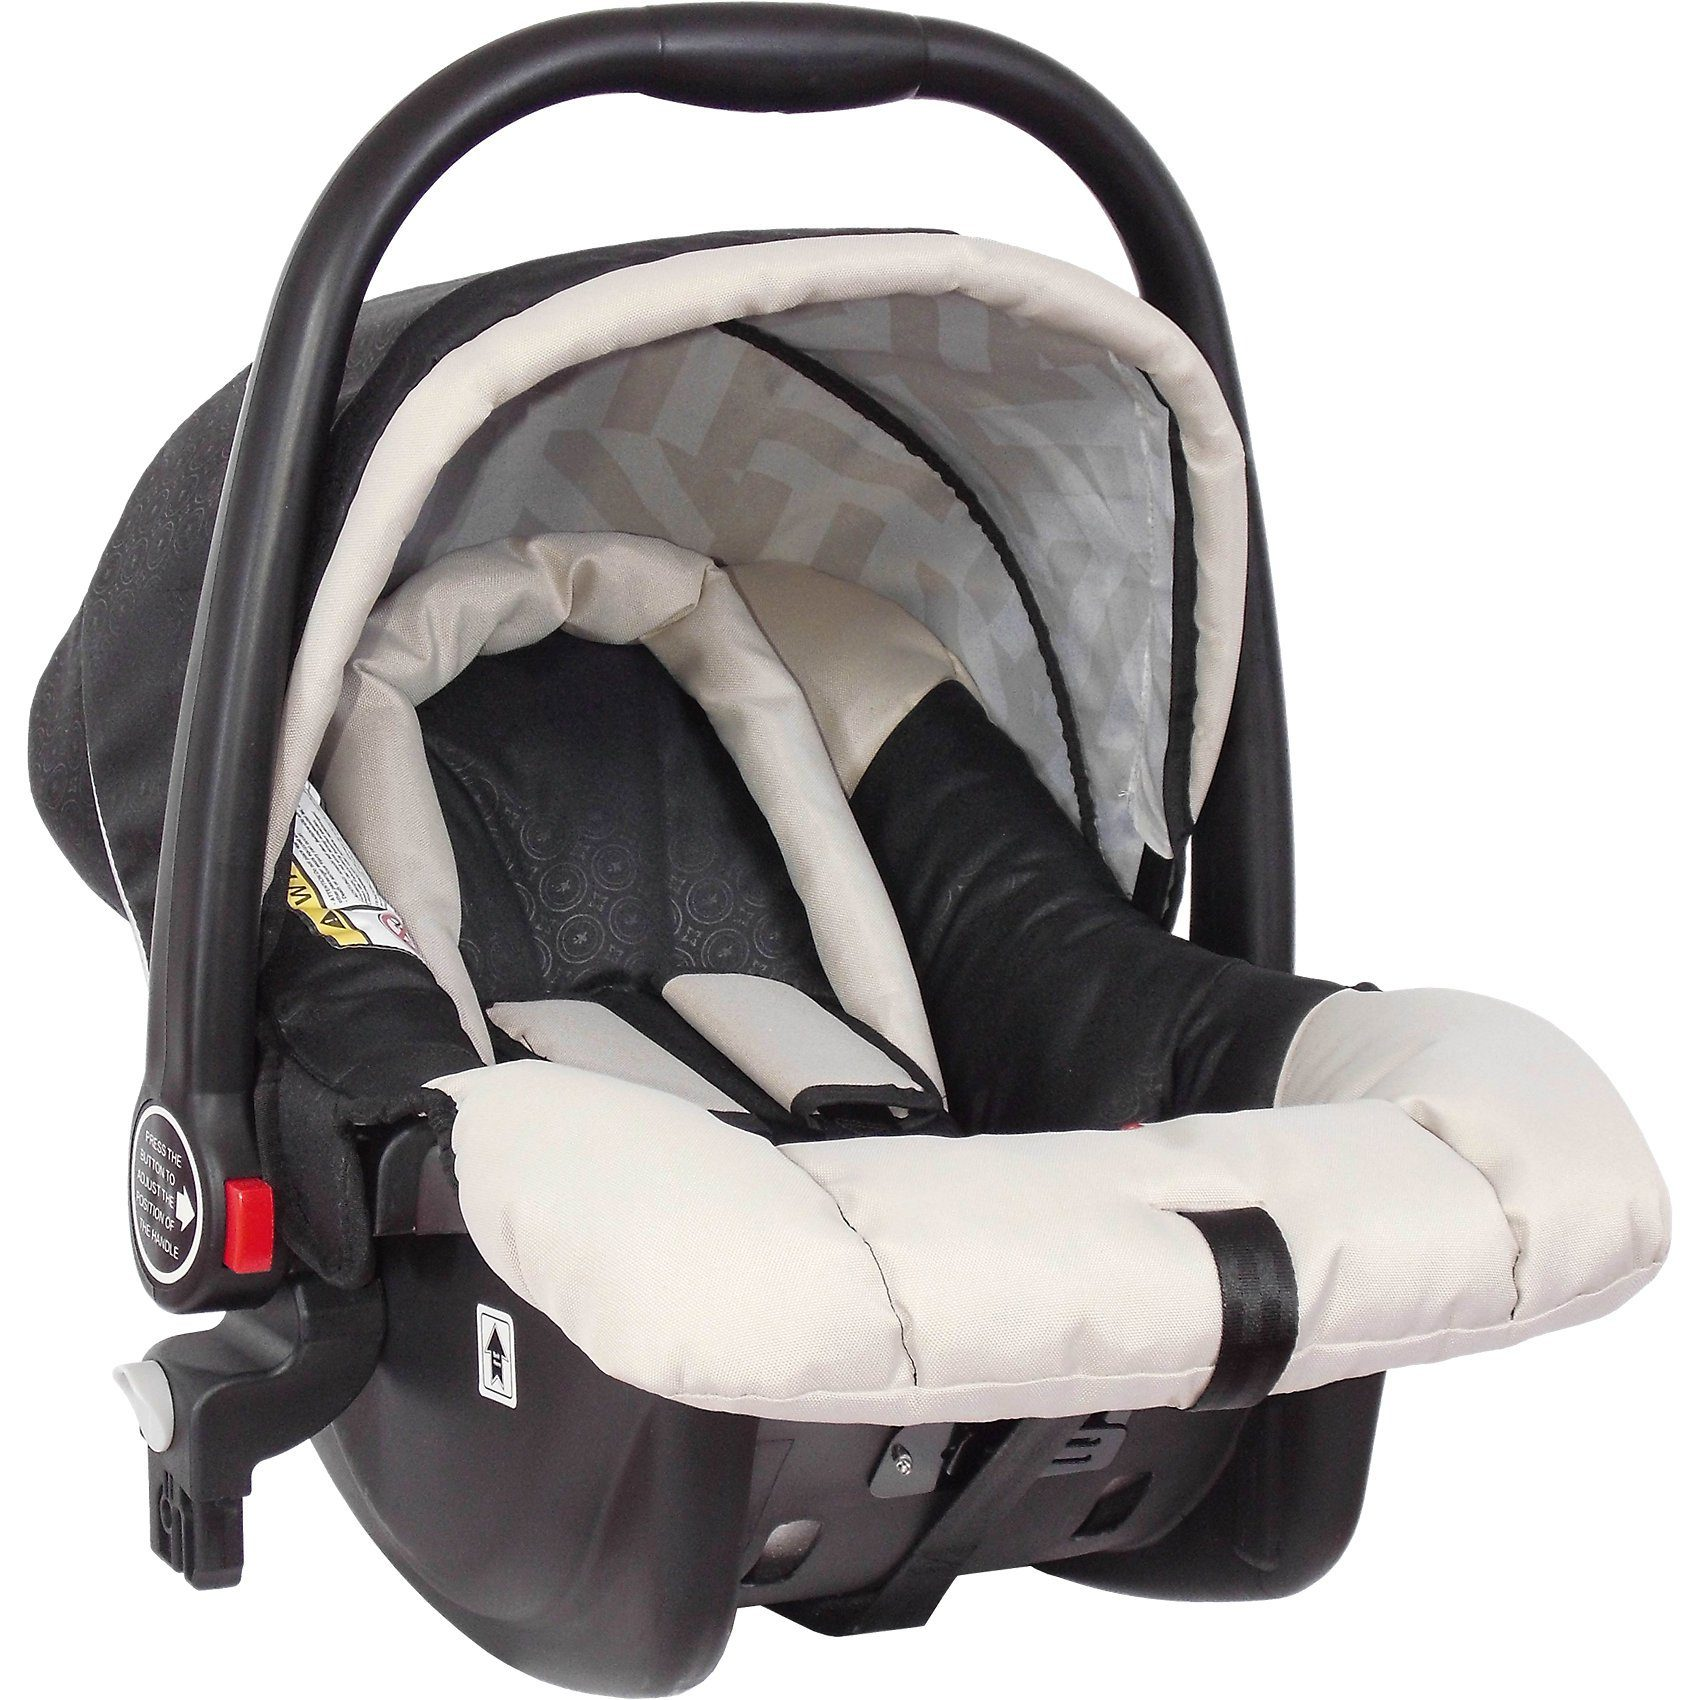 Zekiwa Babyschale für Buggy Jazz Single, black